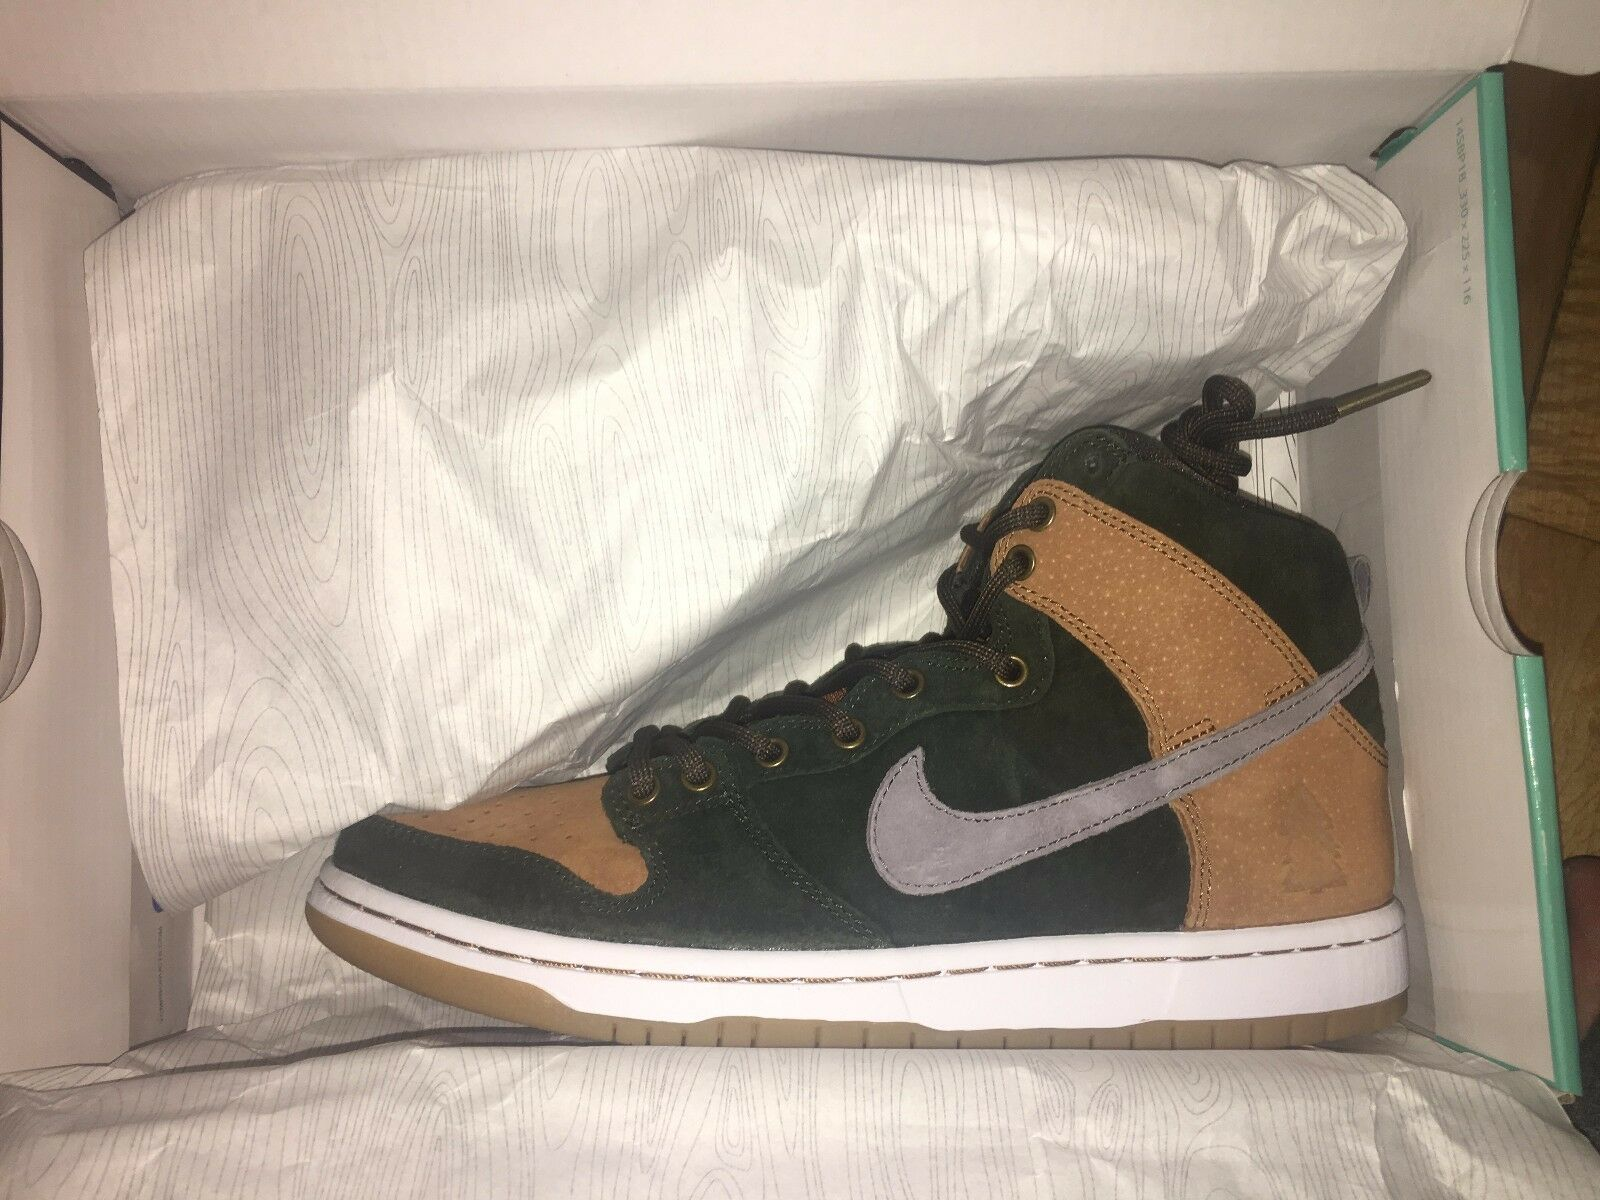 Nike SB Dunk PRM Homegrown QS Survival Pack